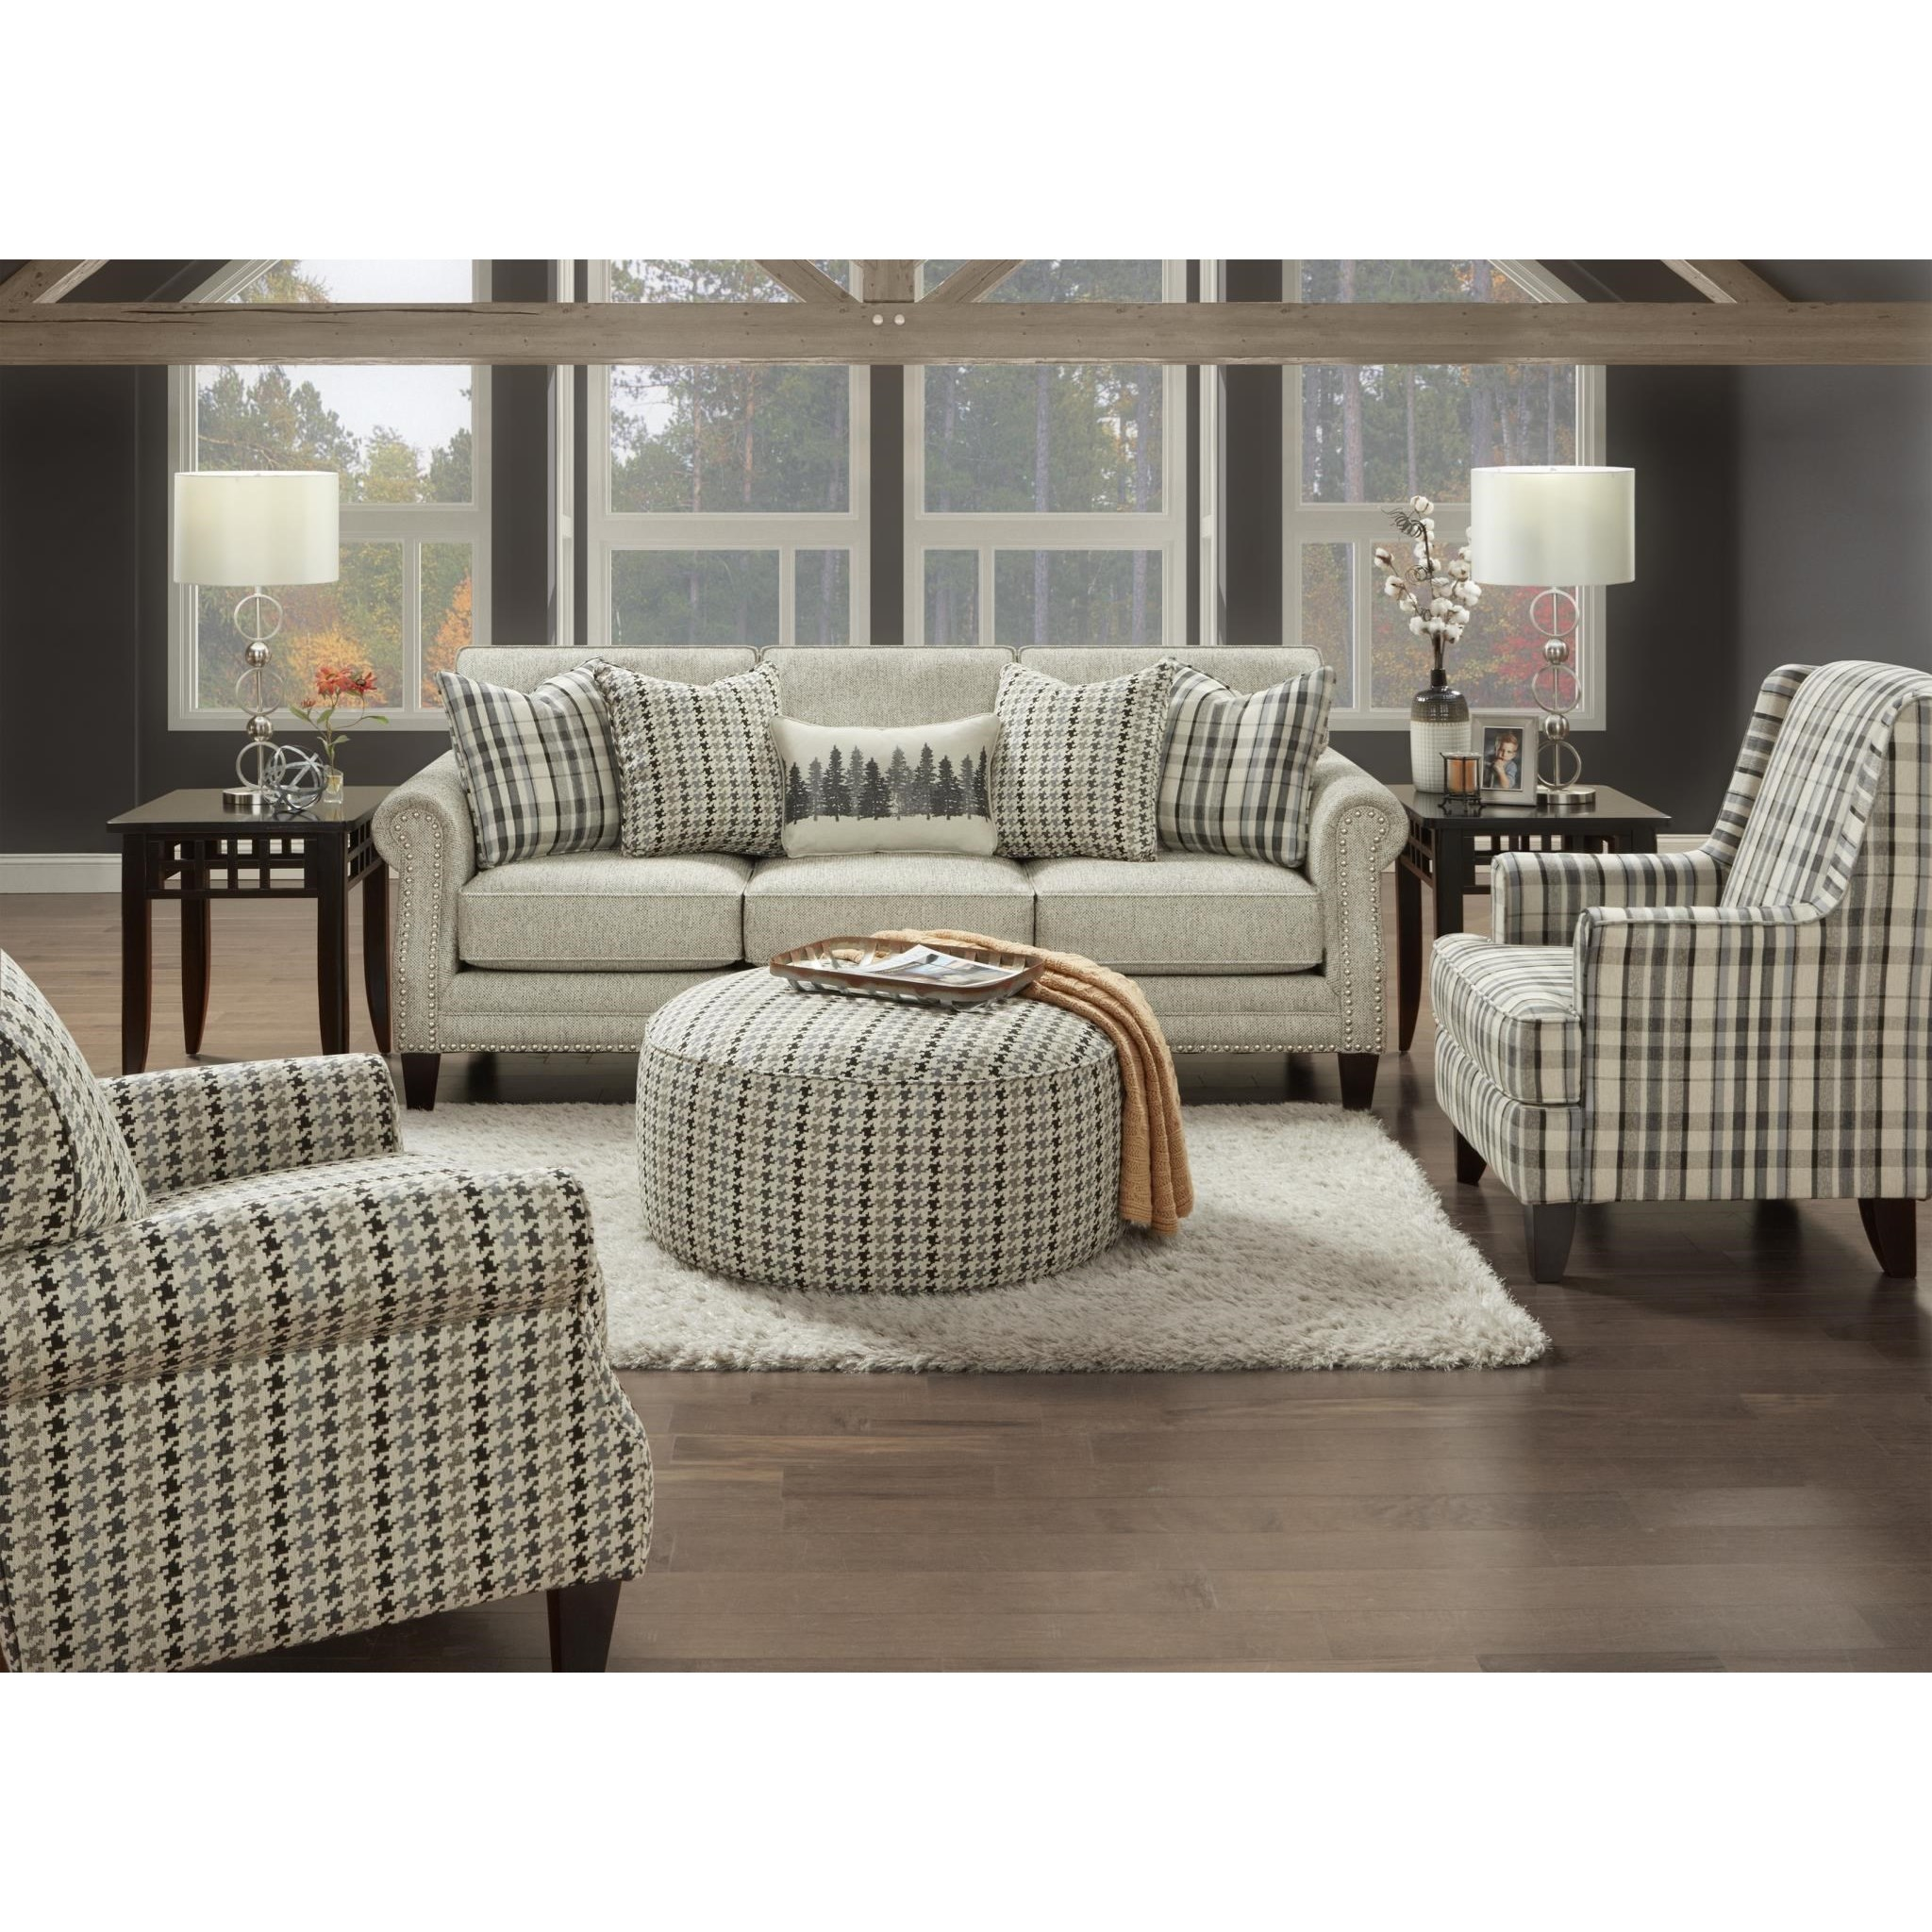 2530 Living Room Group by VFM Signature at Virginia Furniture Market